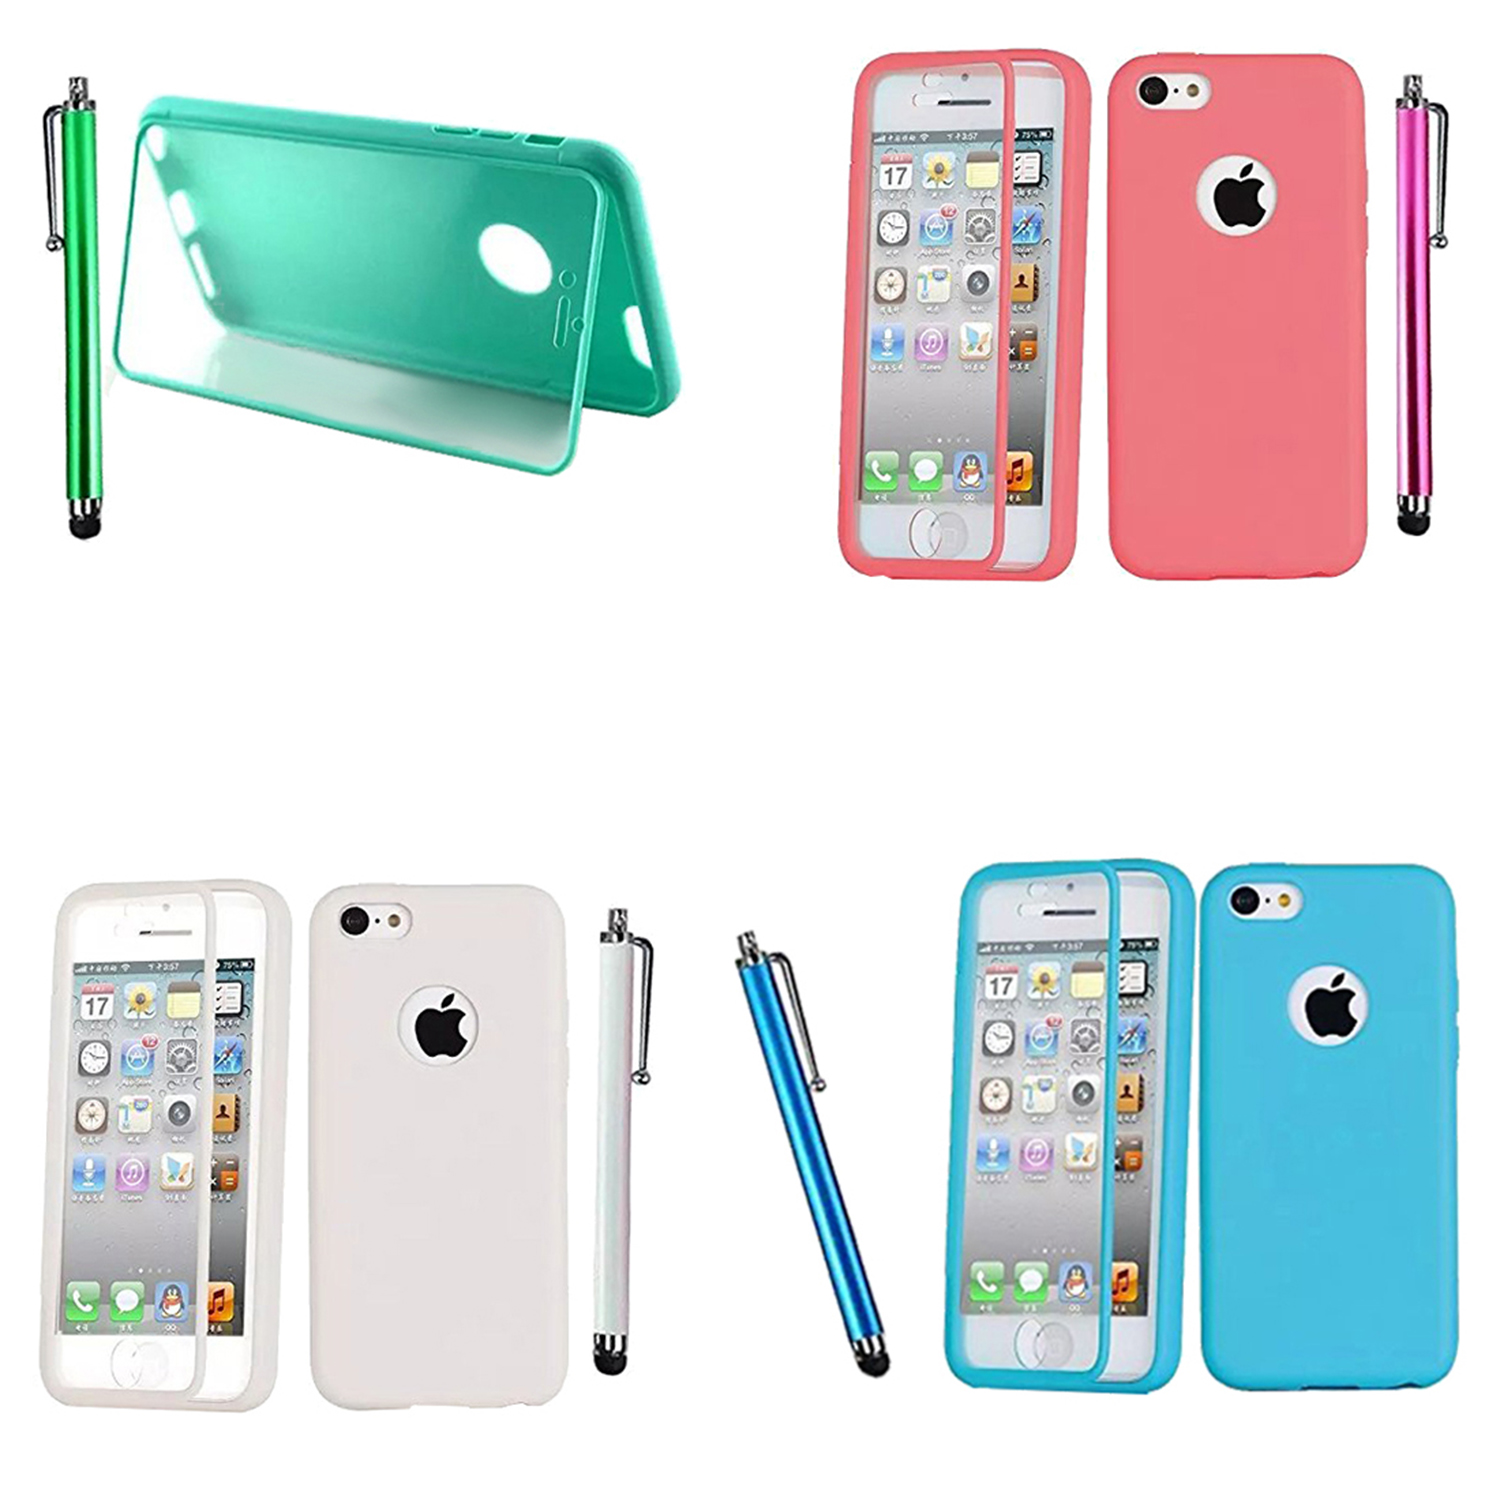 new concept a4605 9297e Details about Clamshell type TPU cell phone case for iPhone 5SE 5S Green +  Stylus Pen L L4Y7)